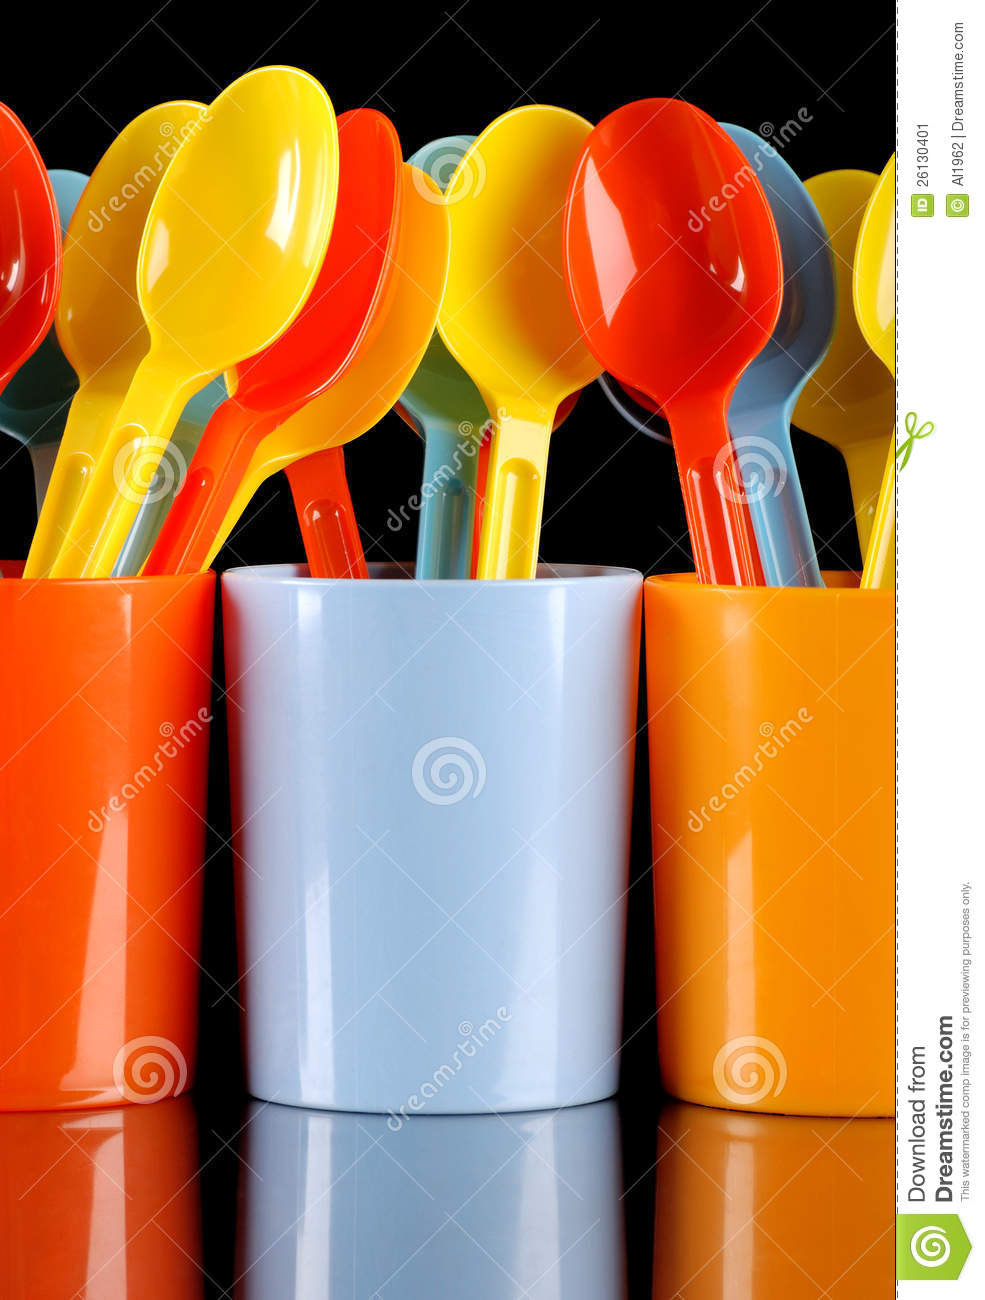 Colorful Spoons: Colored Plastic Spoons Stock Image. Image Of Tableware